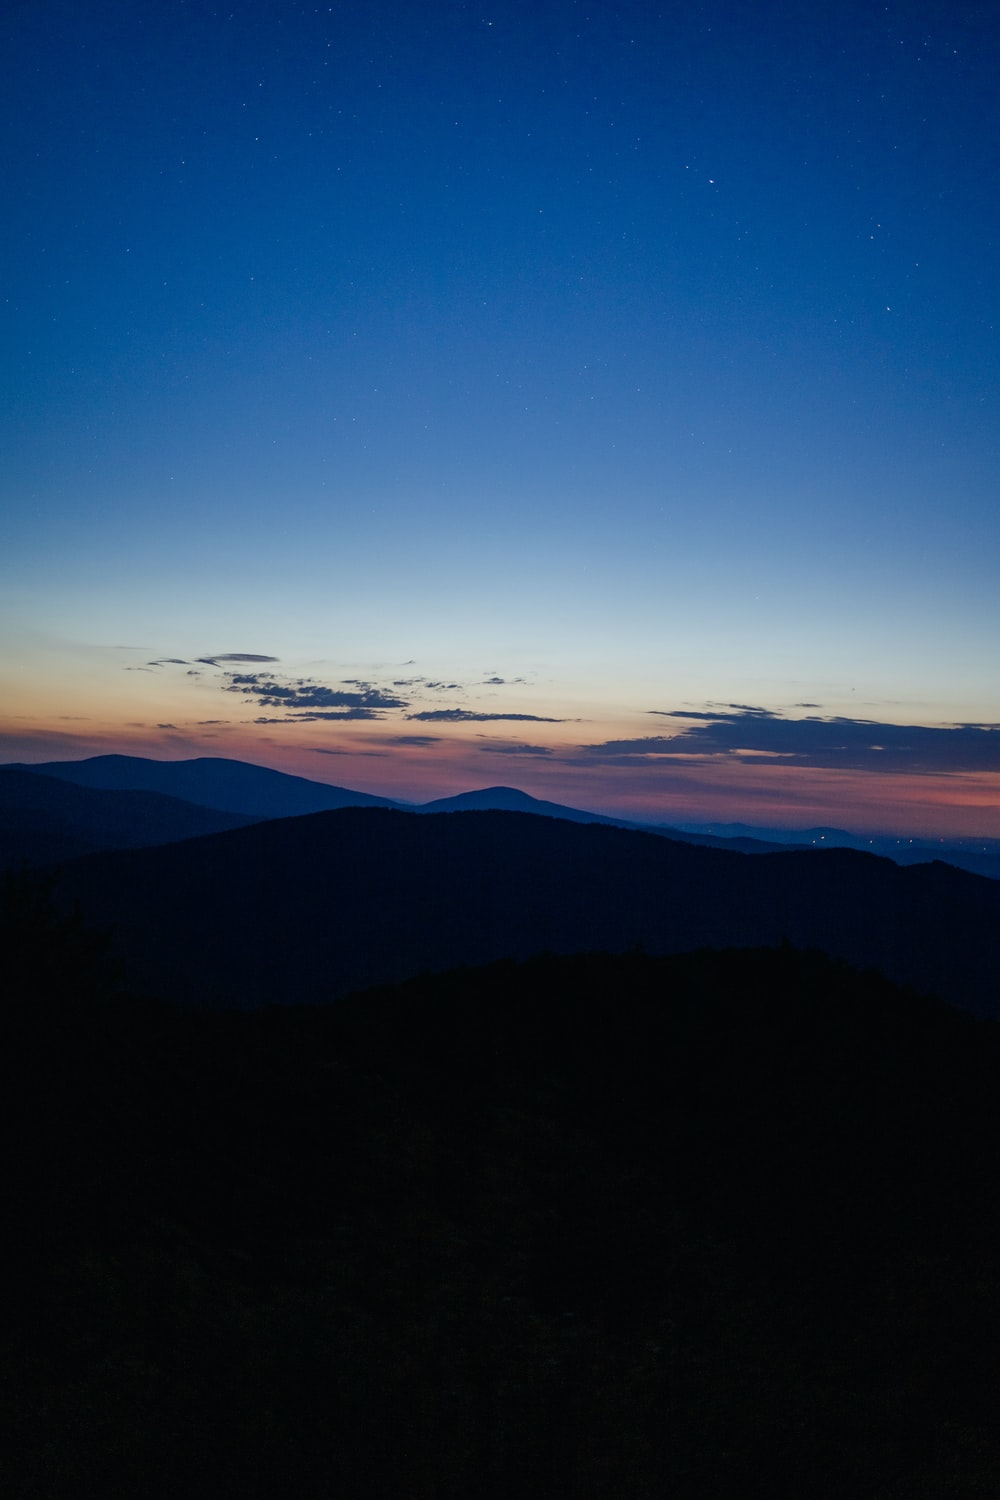 silhouette of mountains under blue sky during sunset